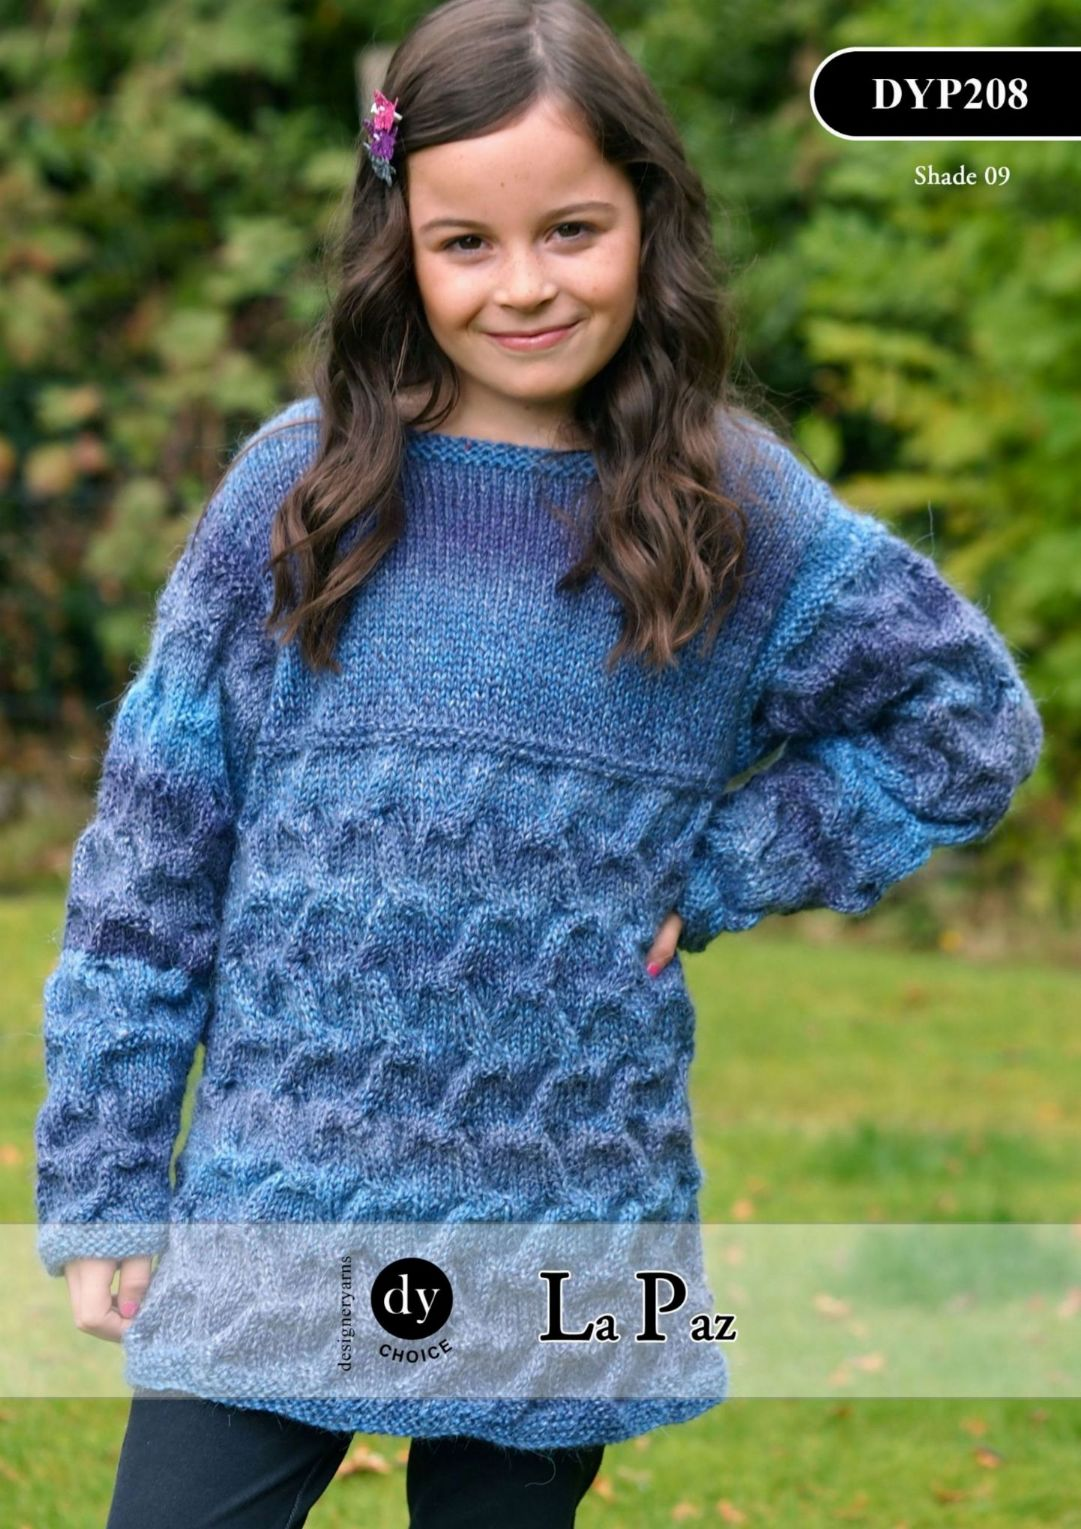 Aran Jumper Dress Knitting Pattern : DYP208 - DY CHOICE LA PAZ ARAN SWEATER TUNIC DRESS KNITTING PATTERN - TO FIT ...